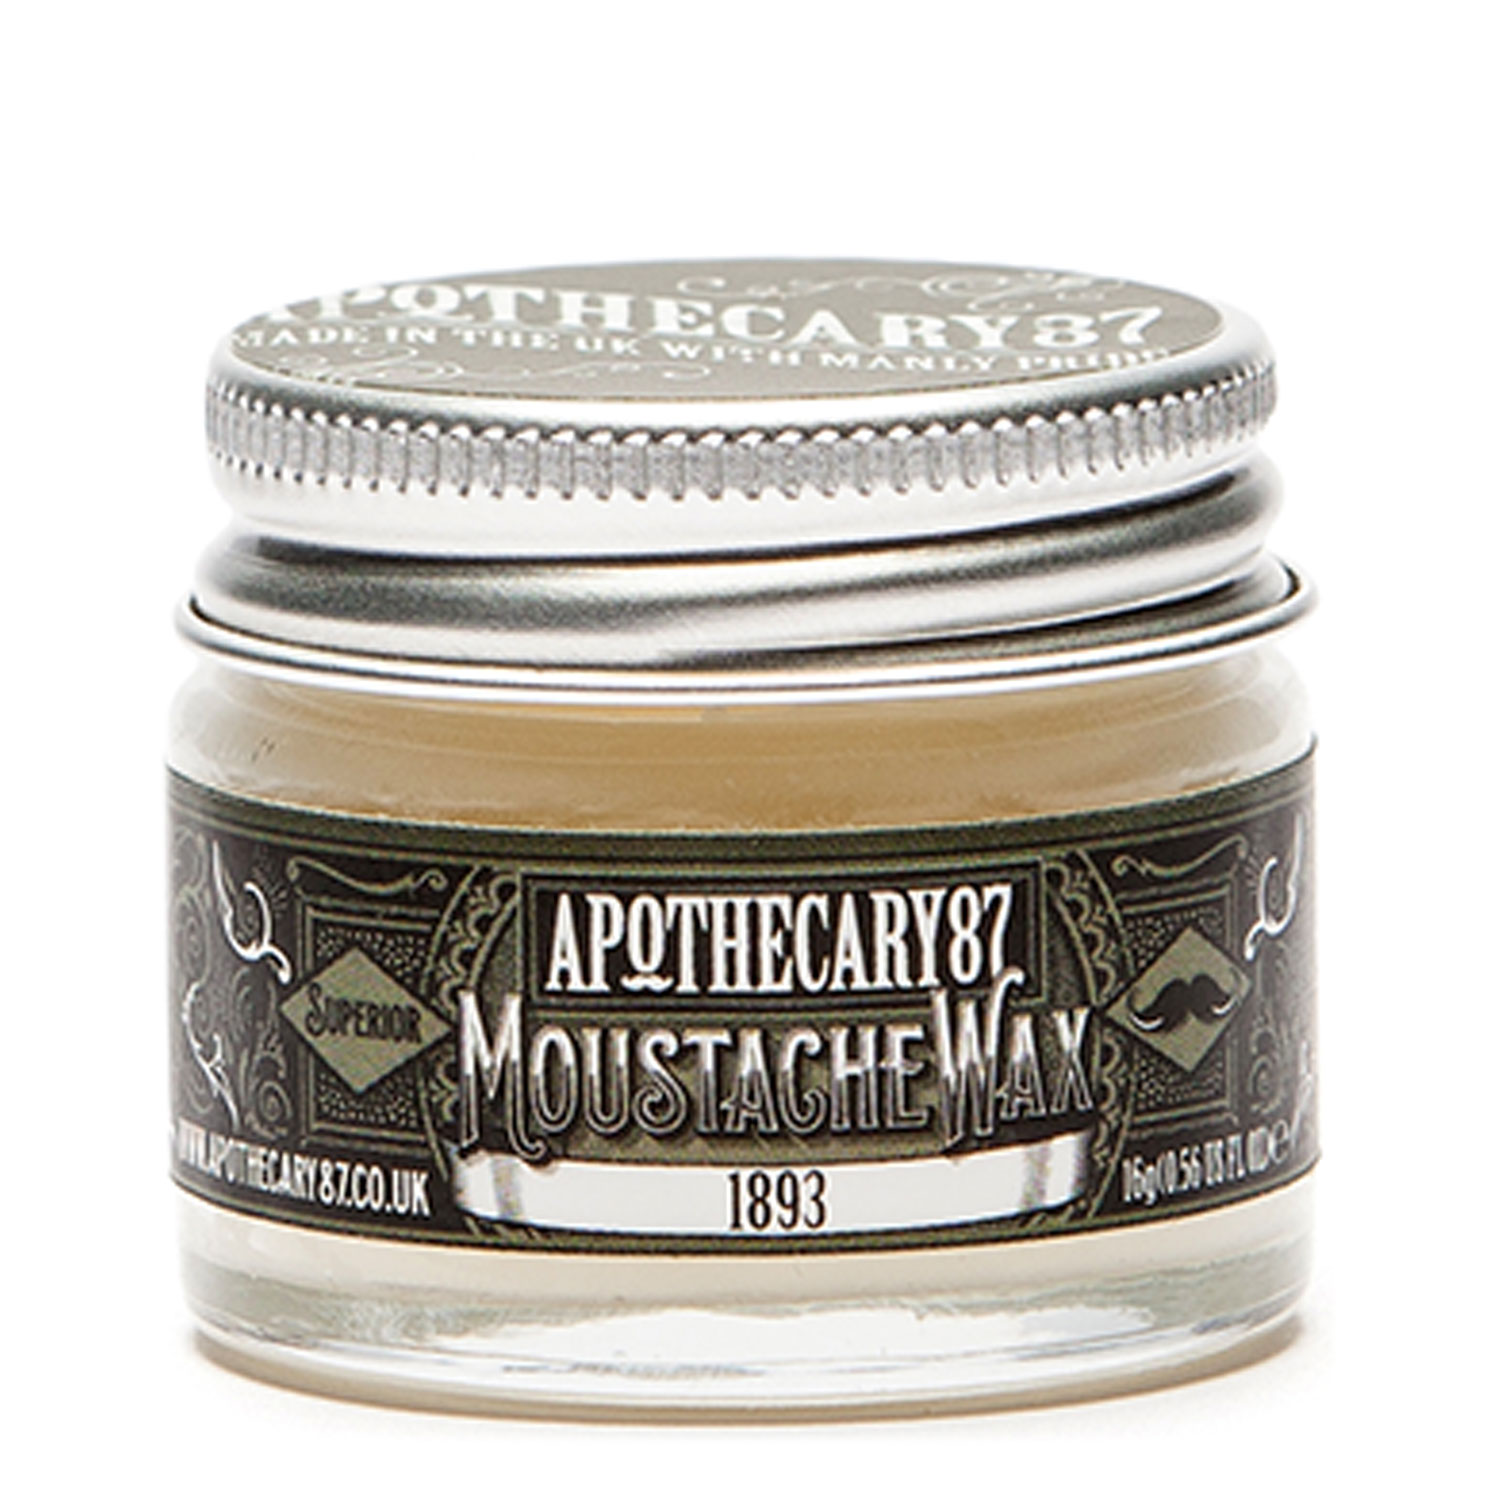 Apothecary87 Grooming - Moustache Wax 1893 Fragrance - 15ml